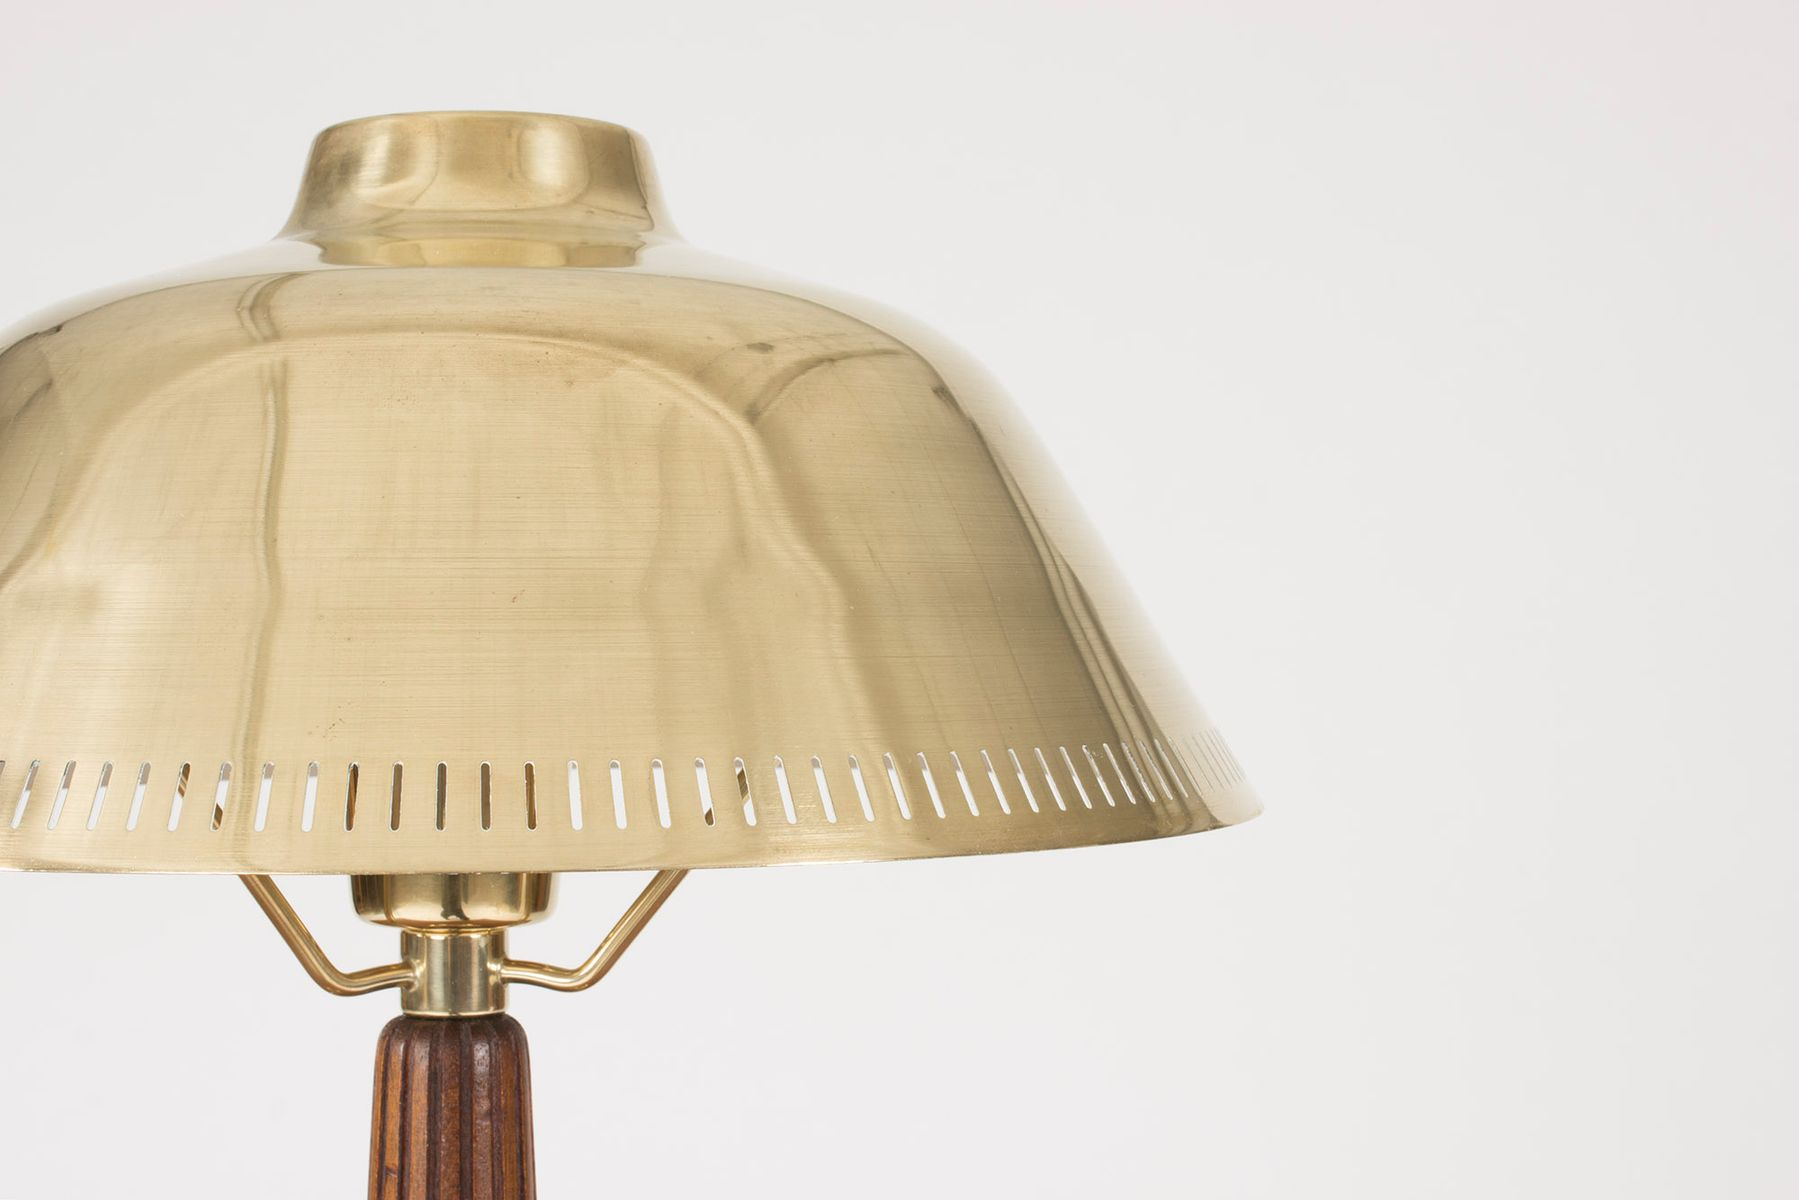 Mid Century Brass And Mahogany Table Lamp By Hans Bergström For ASEA, 1950s